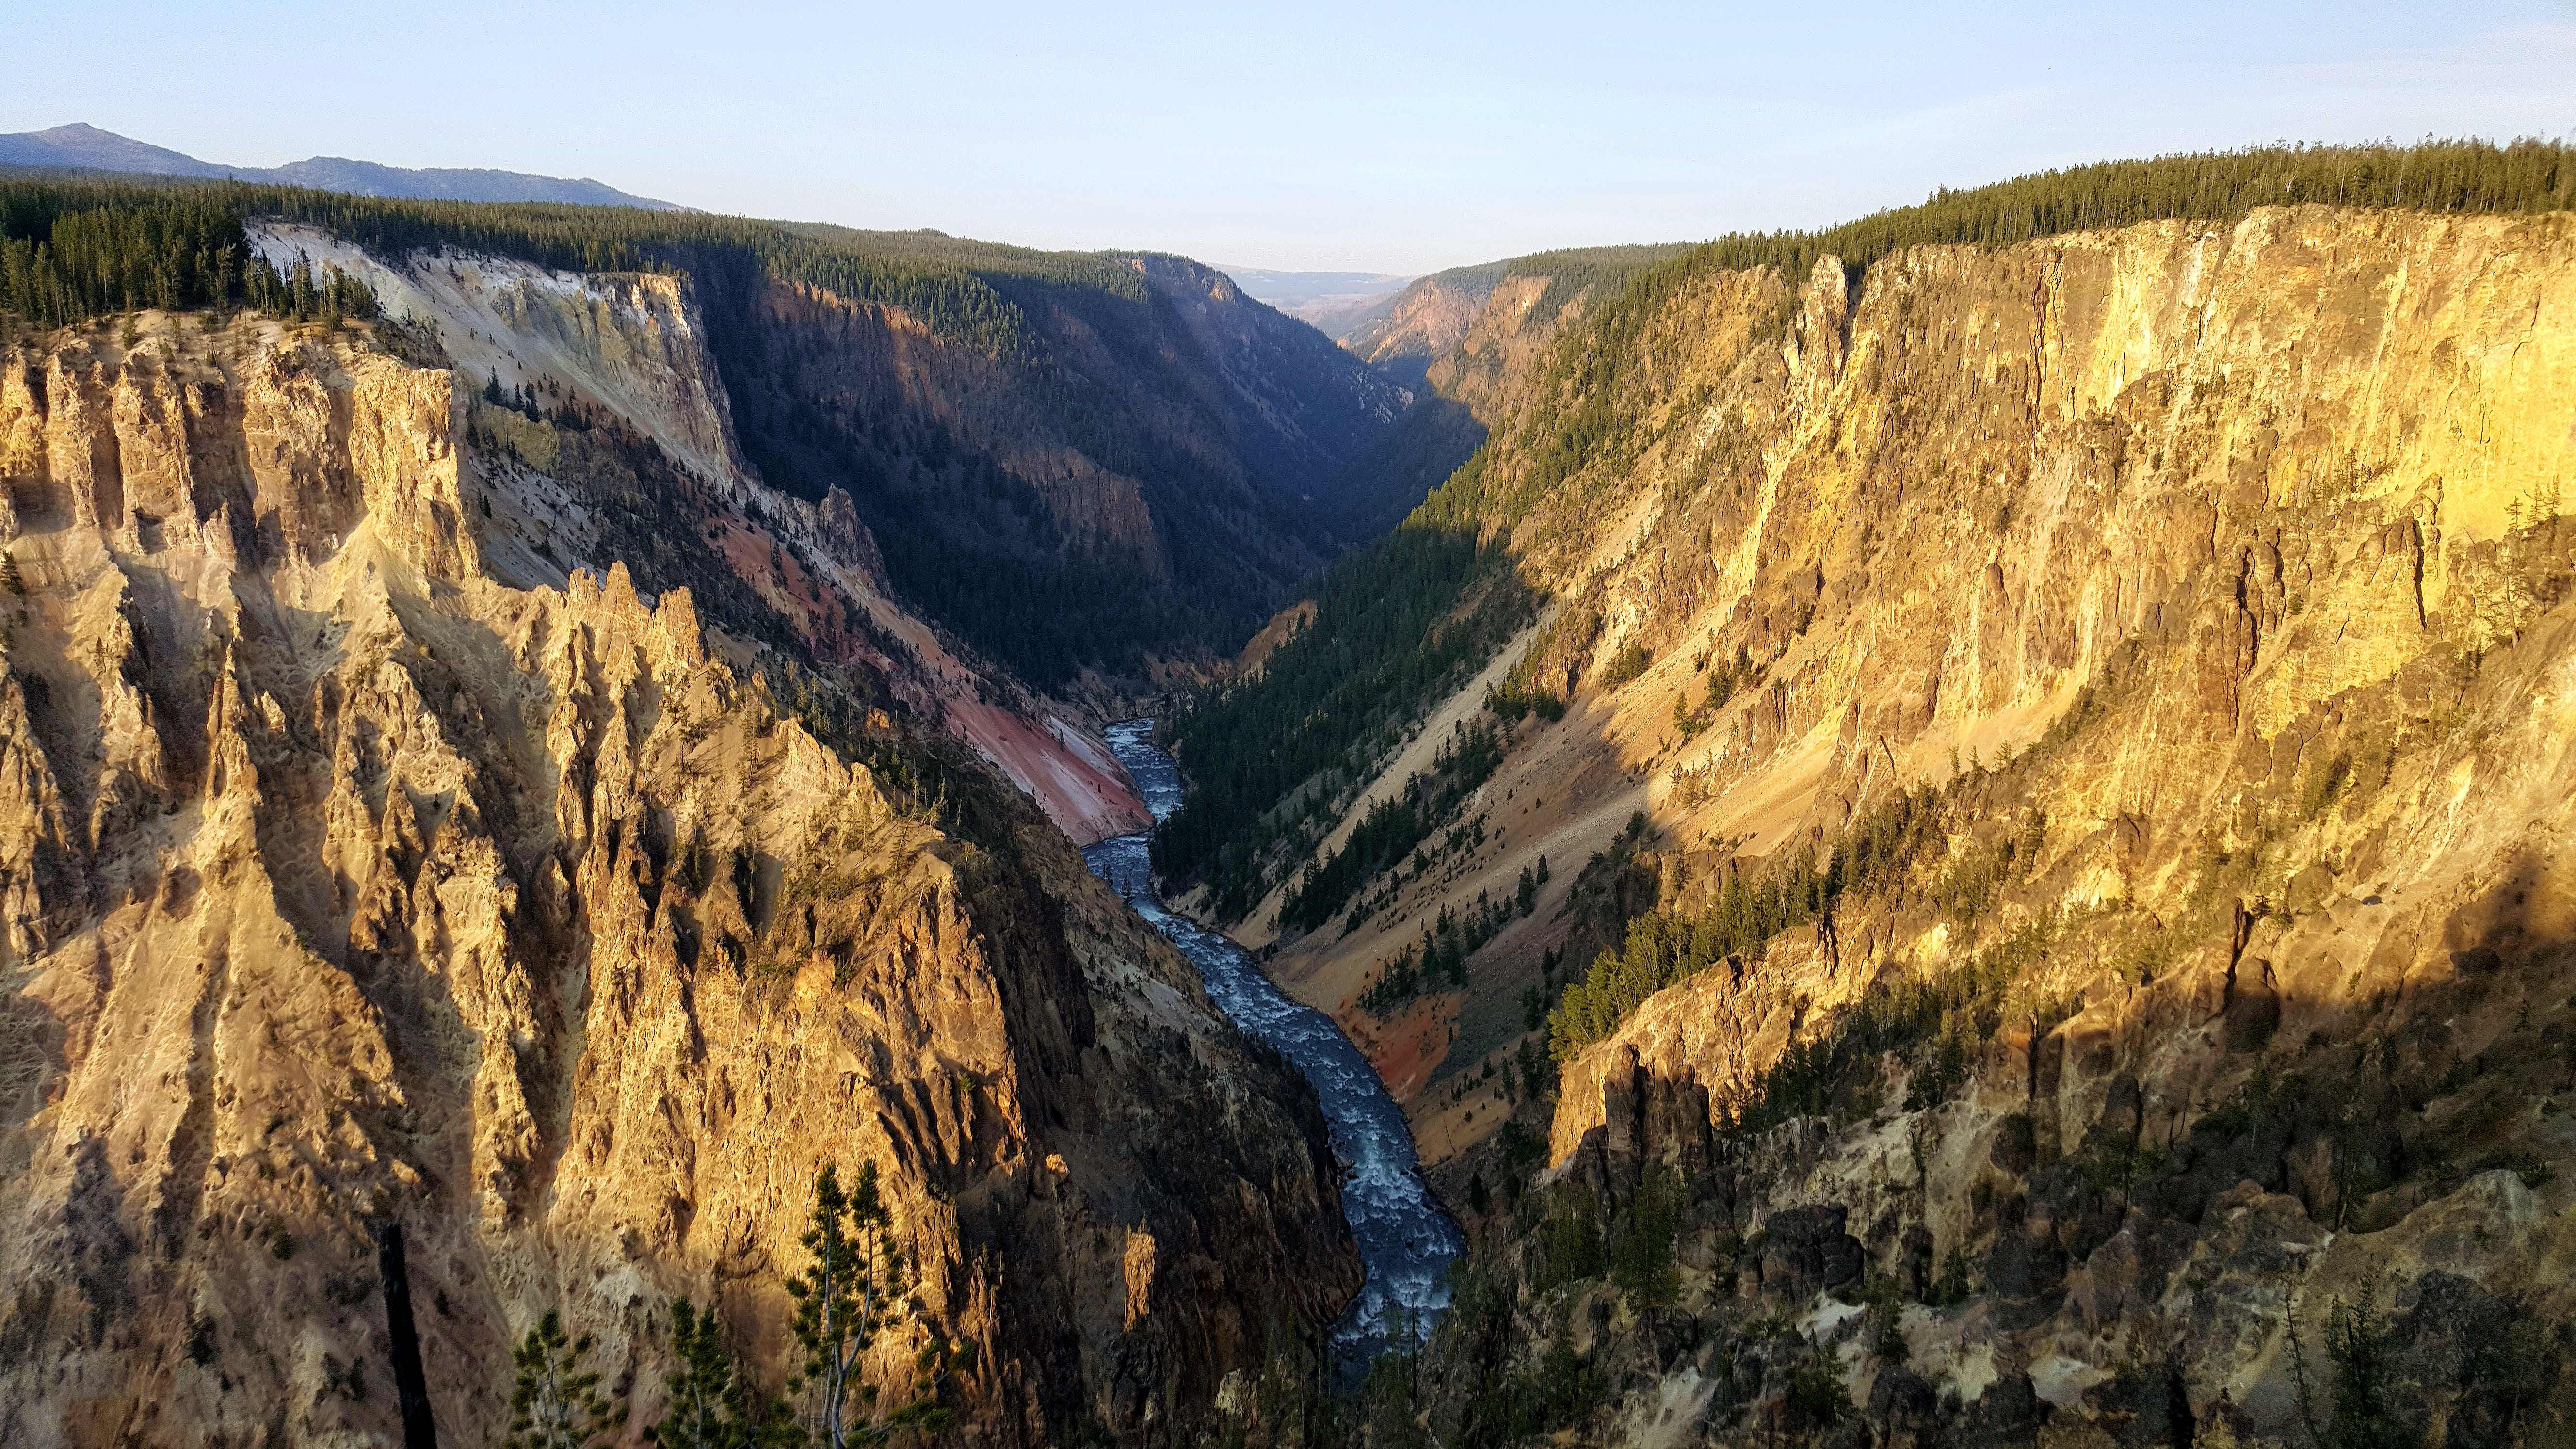 Grand Canyon of the Yellowstone wallpaper